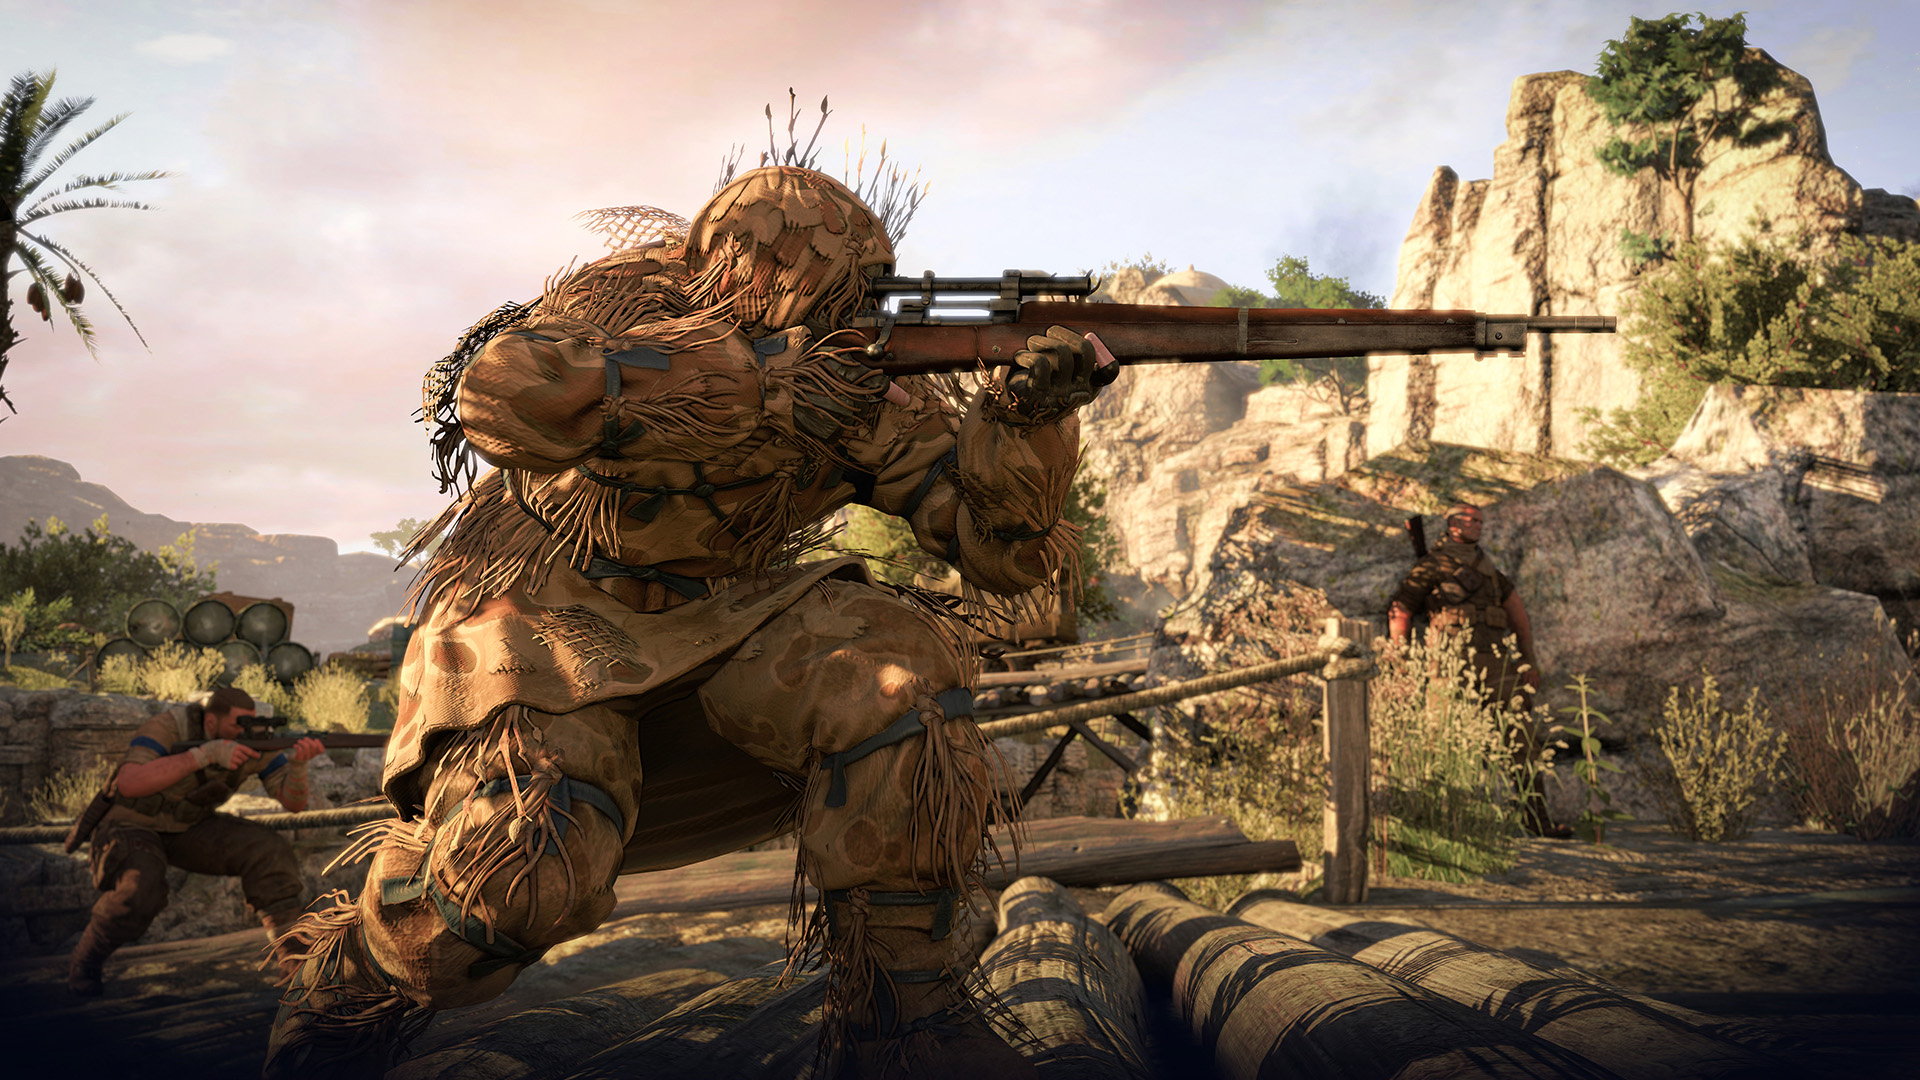 Latest UK Gaming Charts – Sniper Elite 3 Stays on Top